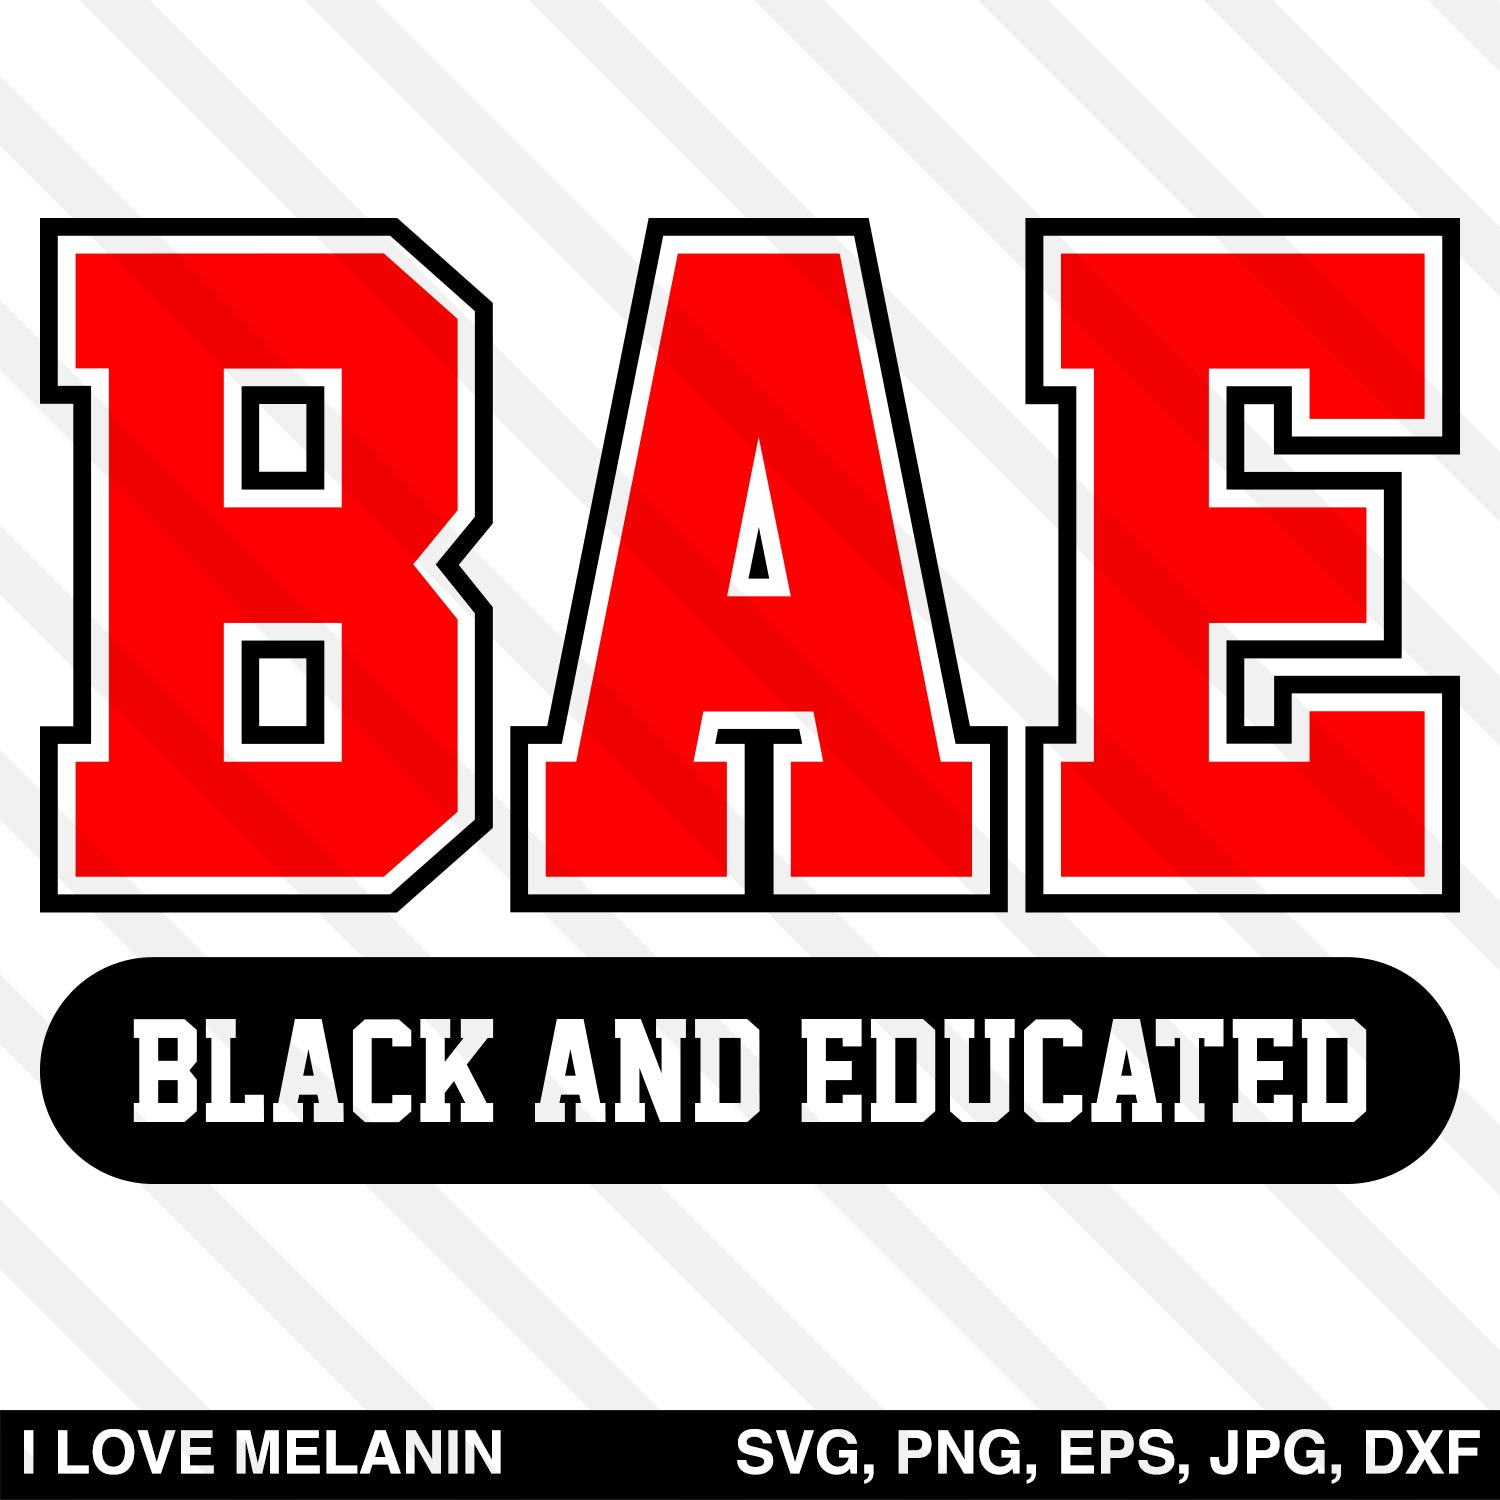 BAE Black And Educated SVG